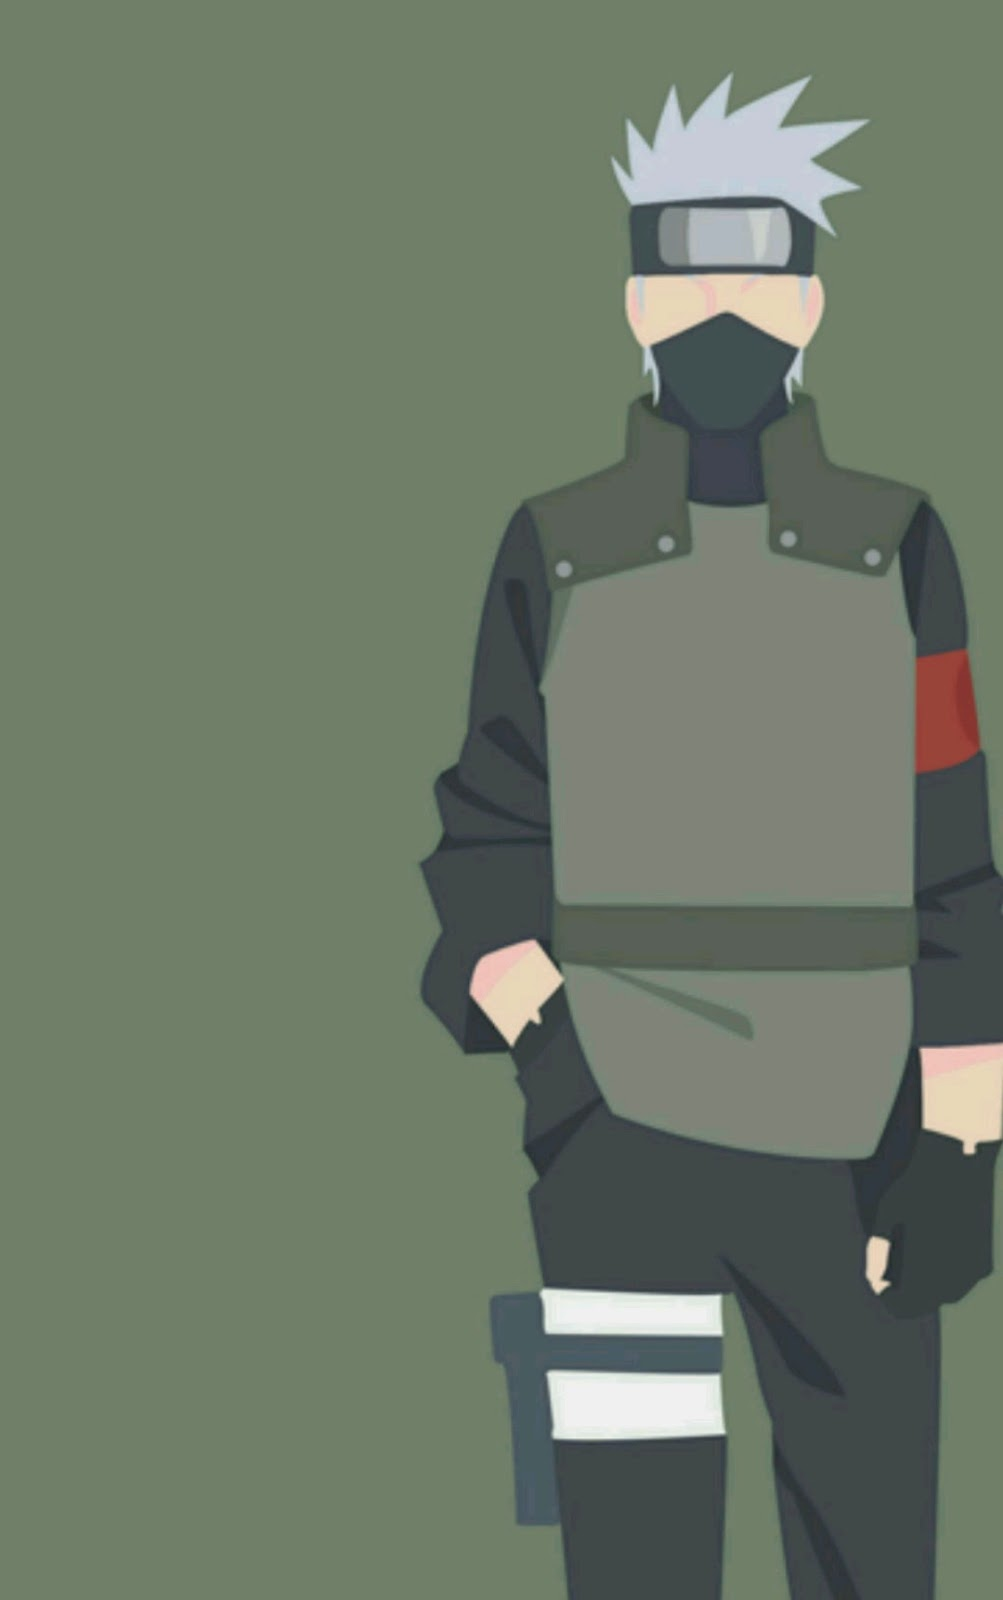 9 Download Wallpaper hatake kakashi vector untuk Android dan Whatsapp